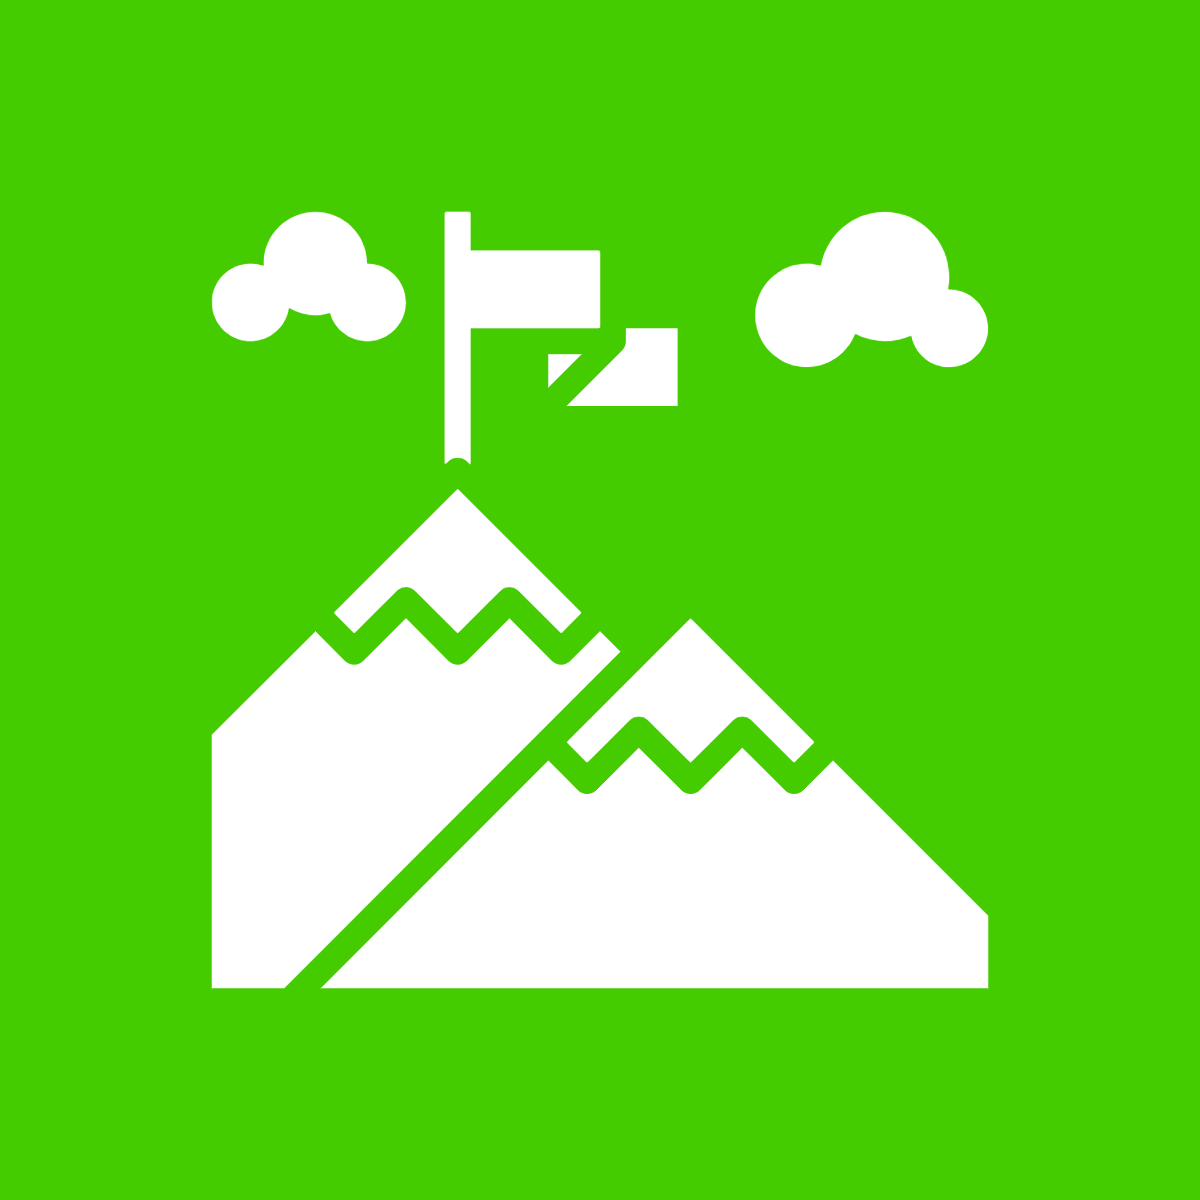 A graphic illustration of a white mountain with a flag in the top